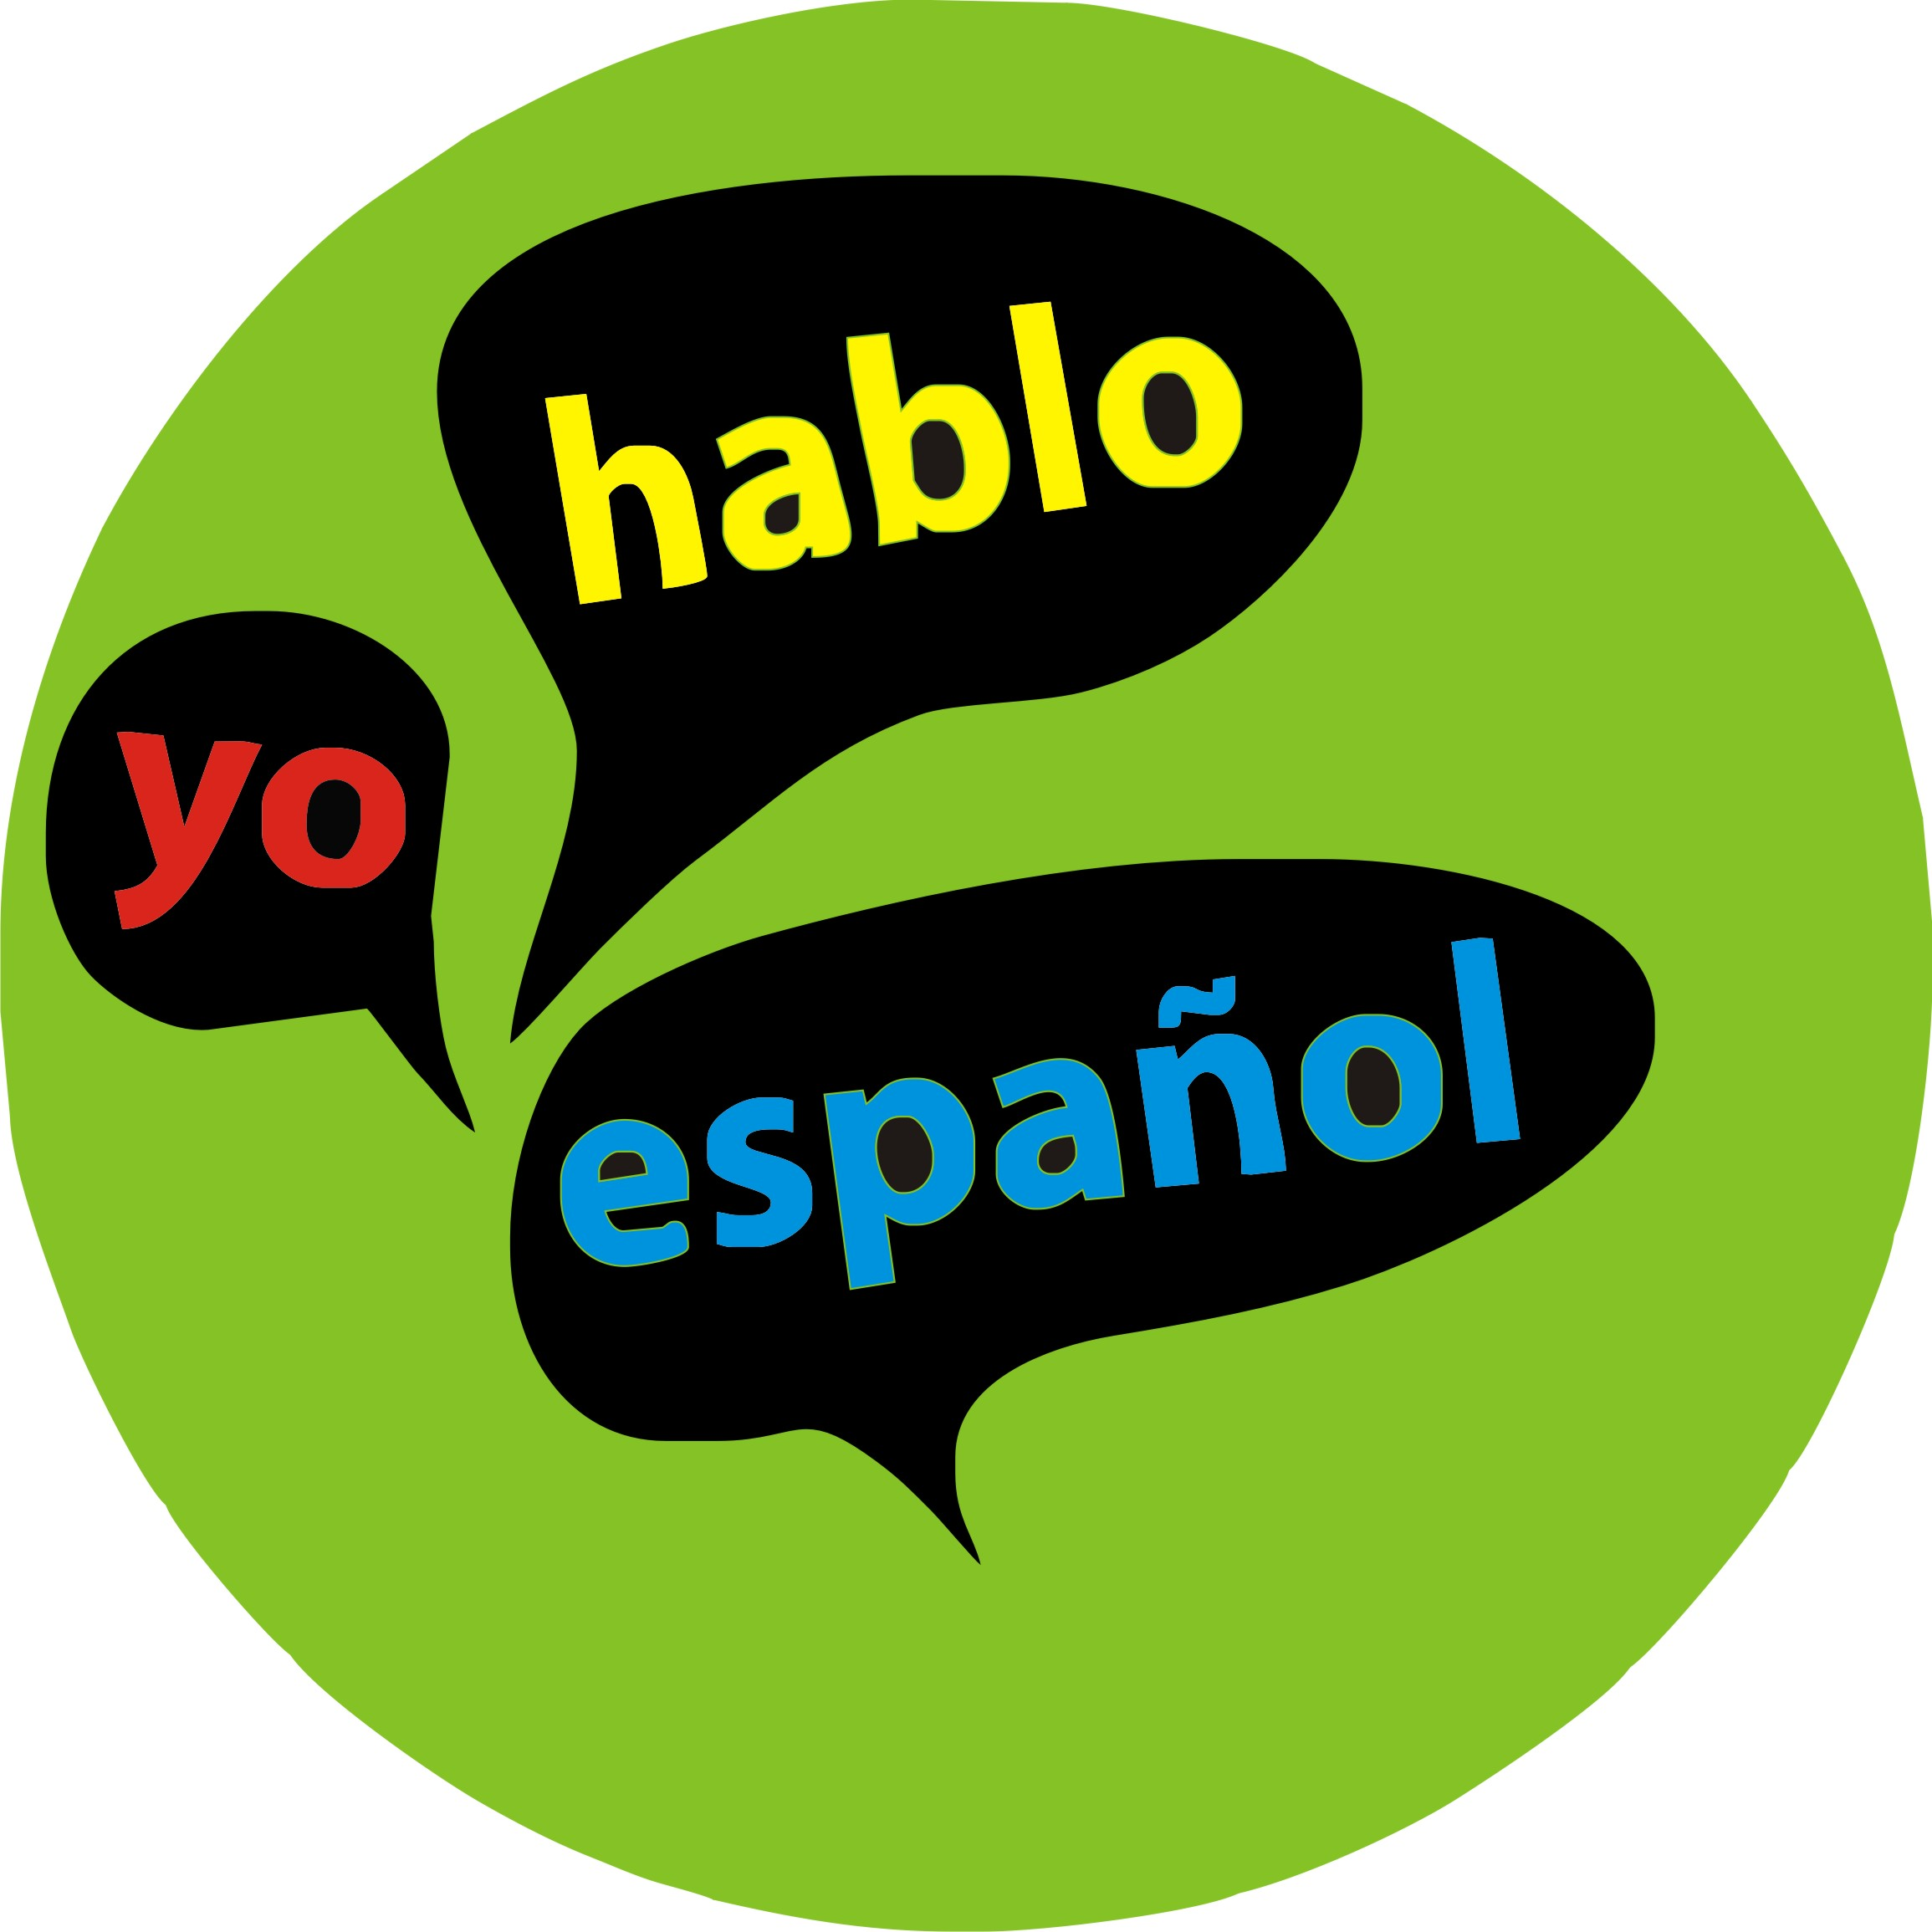 free-spanish-cliparts-download-free-clip-art-free-clip-art-on-spanish-clipart-free-2310_2310